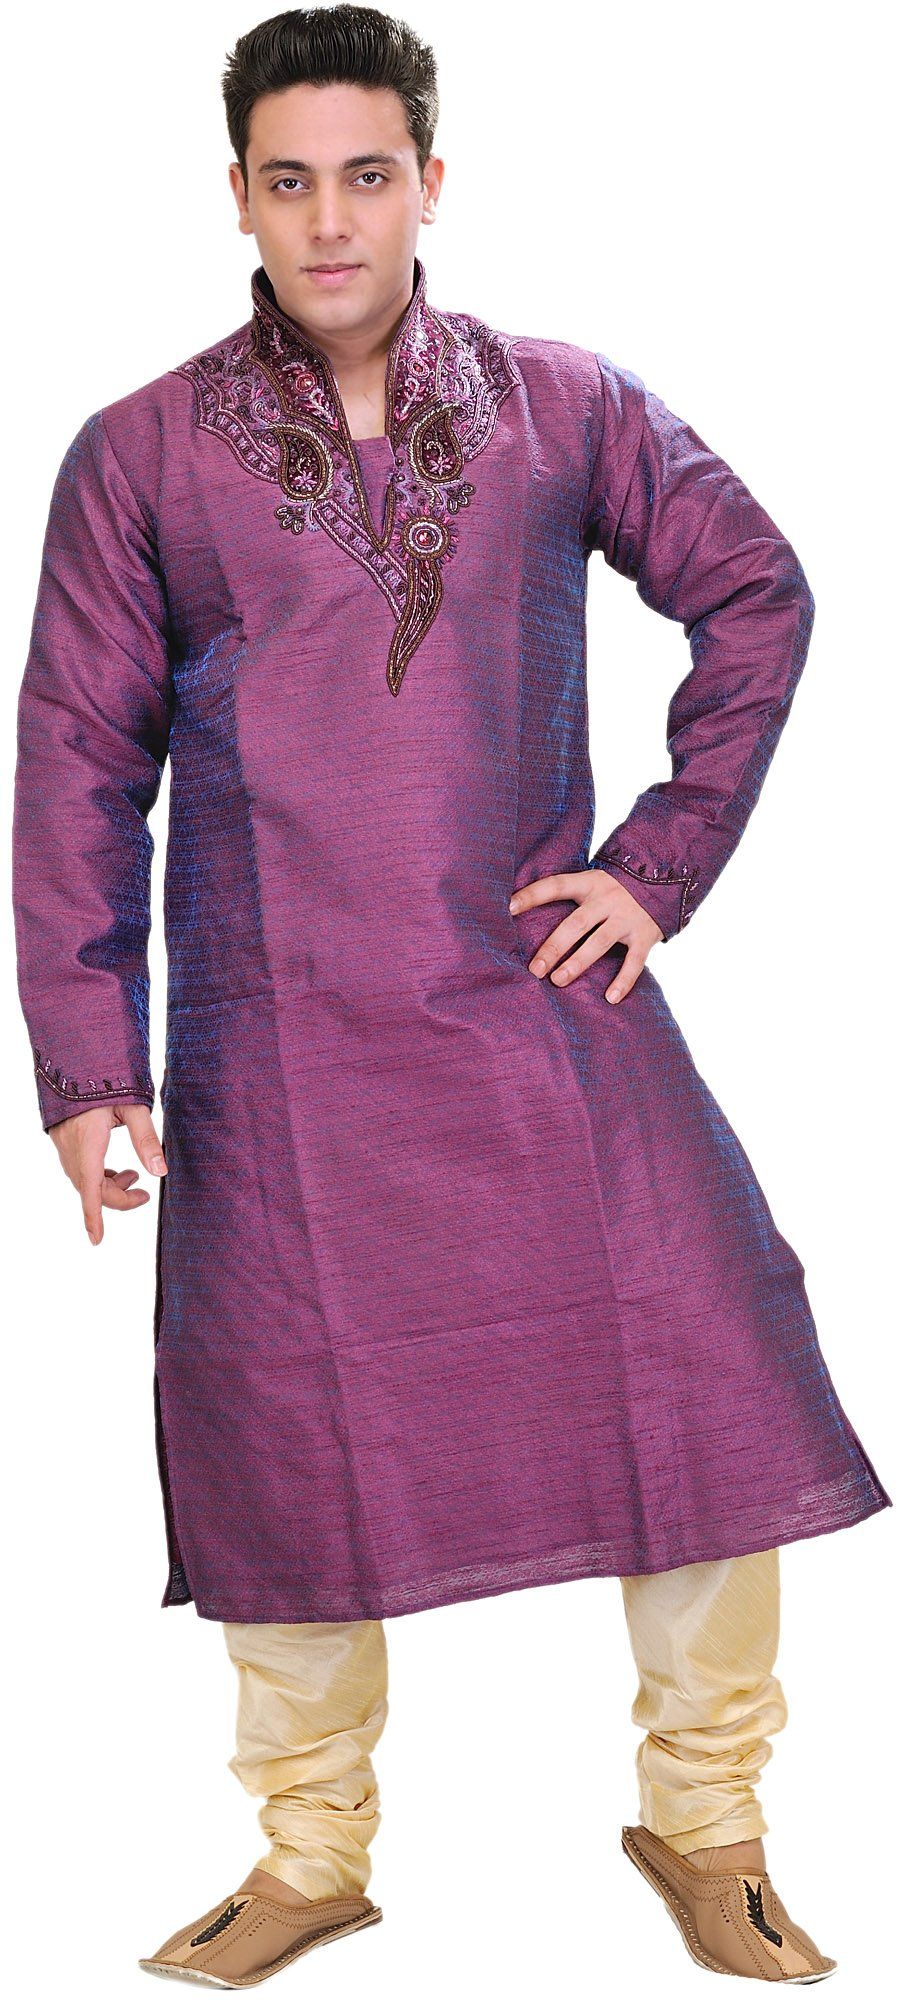 Exotic India Royal-Purple Wedding Kurta Pajama Set with Size 40